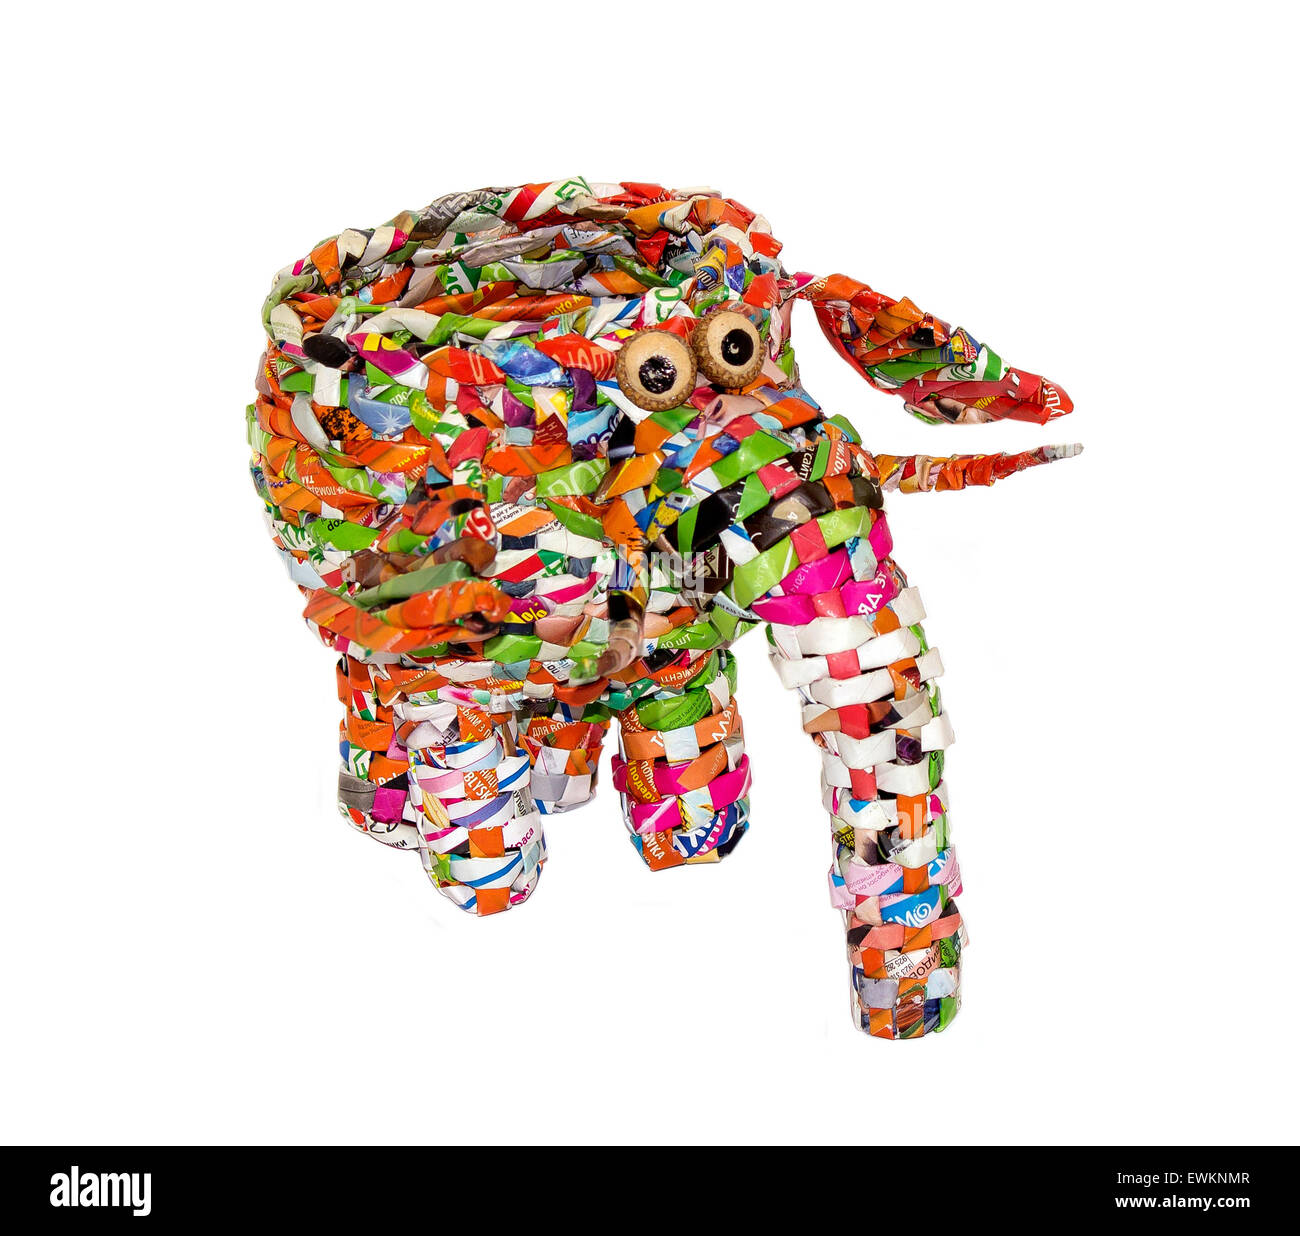 A toy elephant made of candy wrappers on a white background - Stock Image